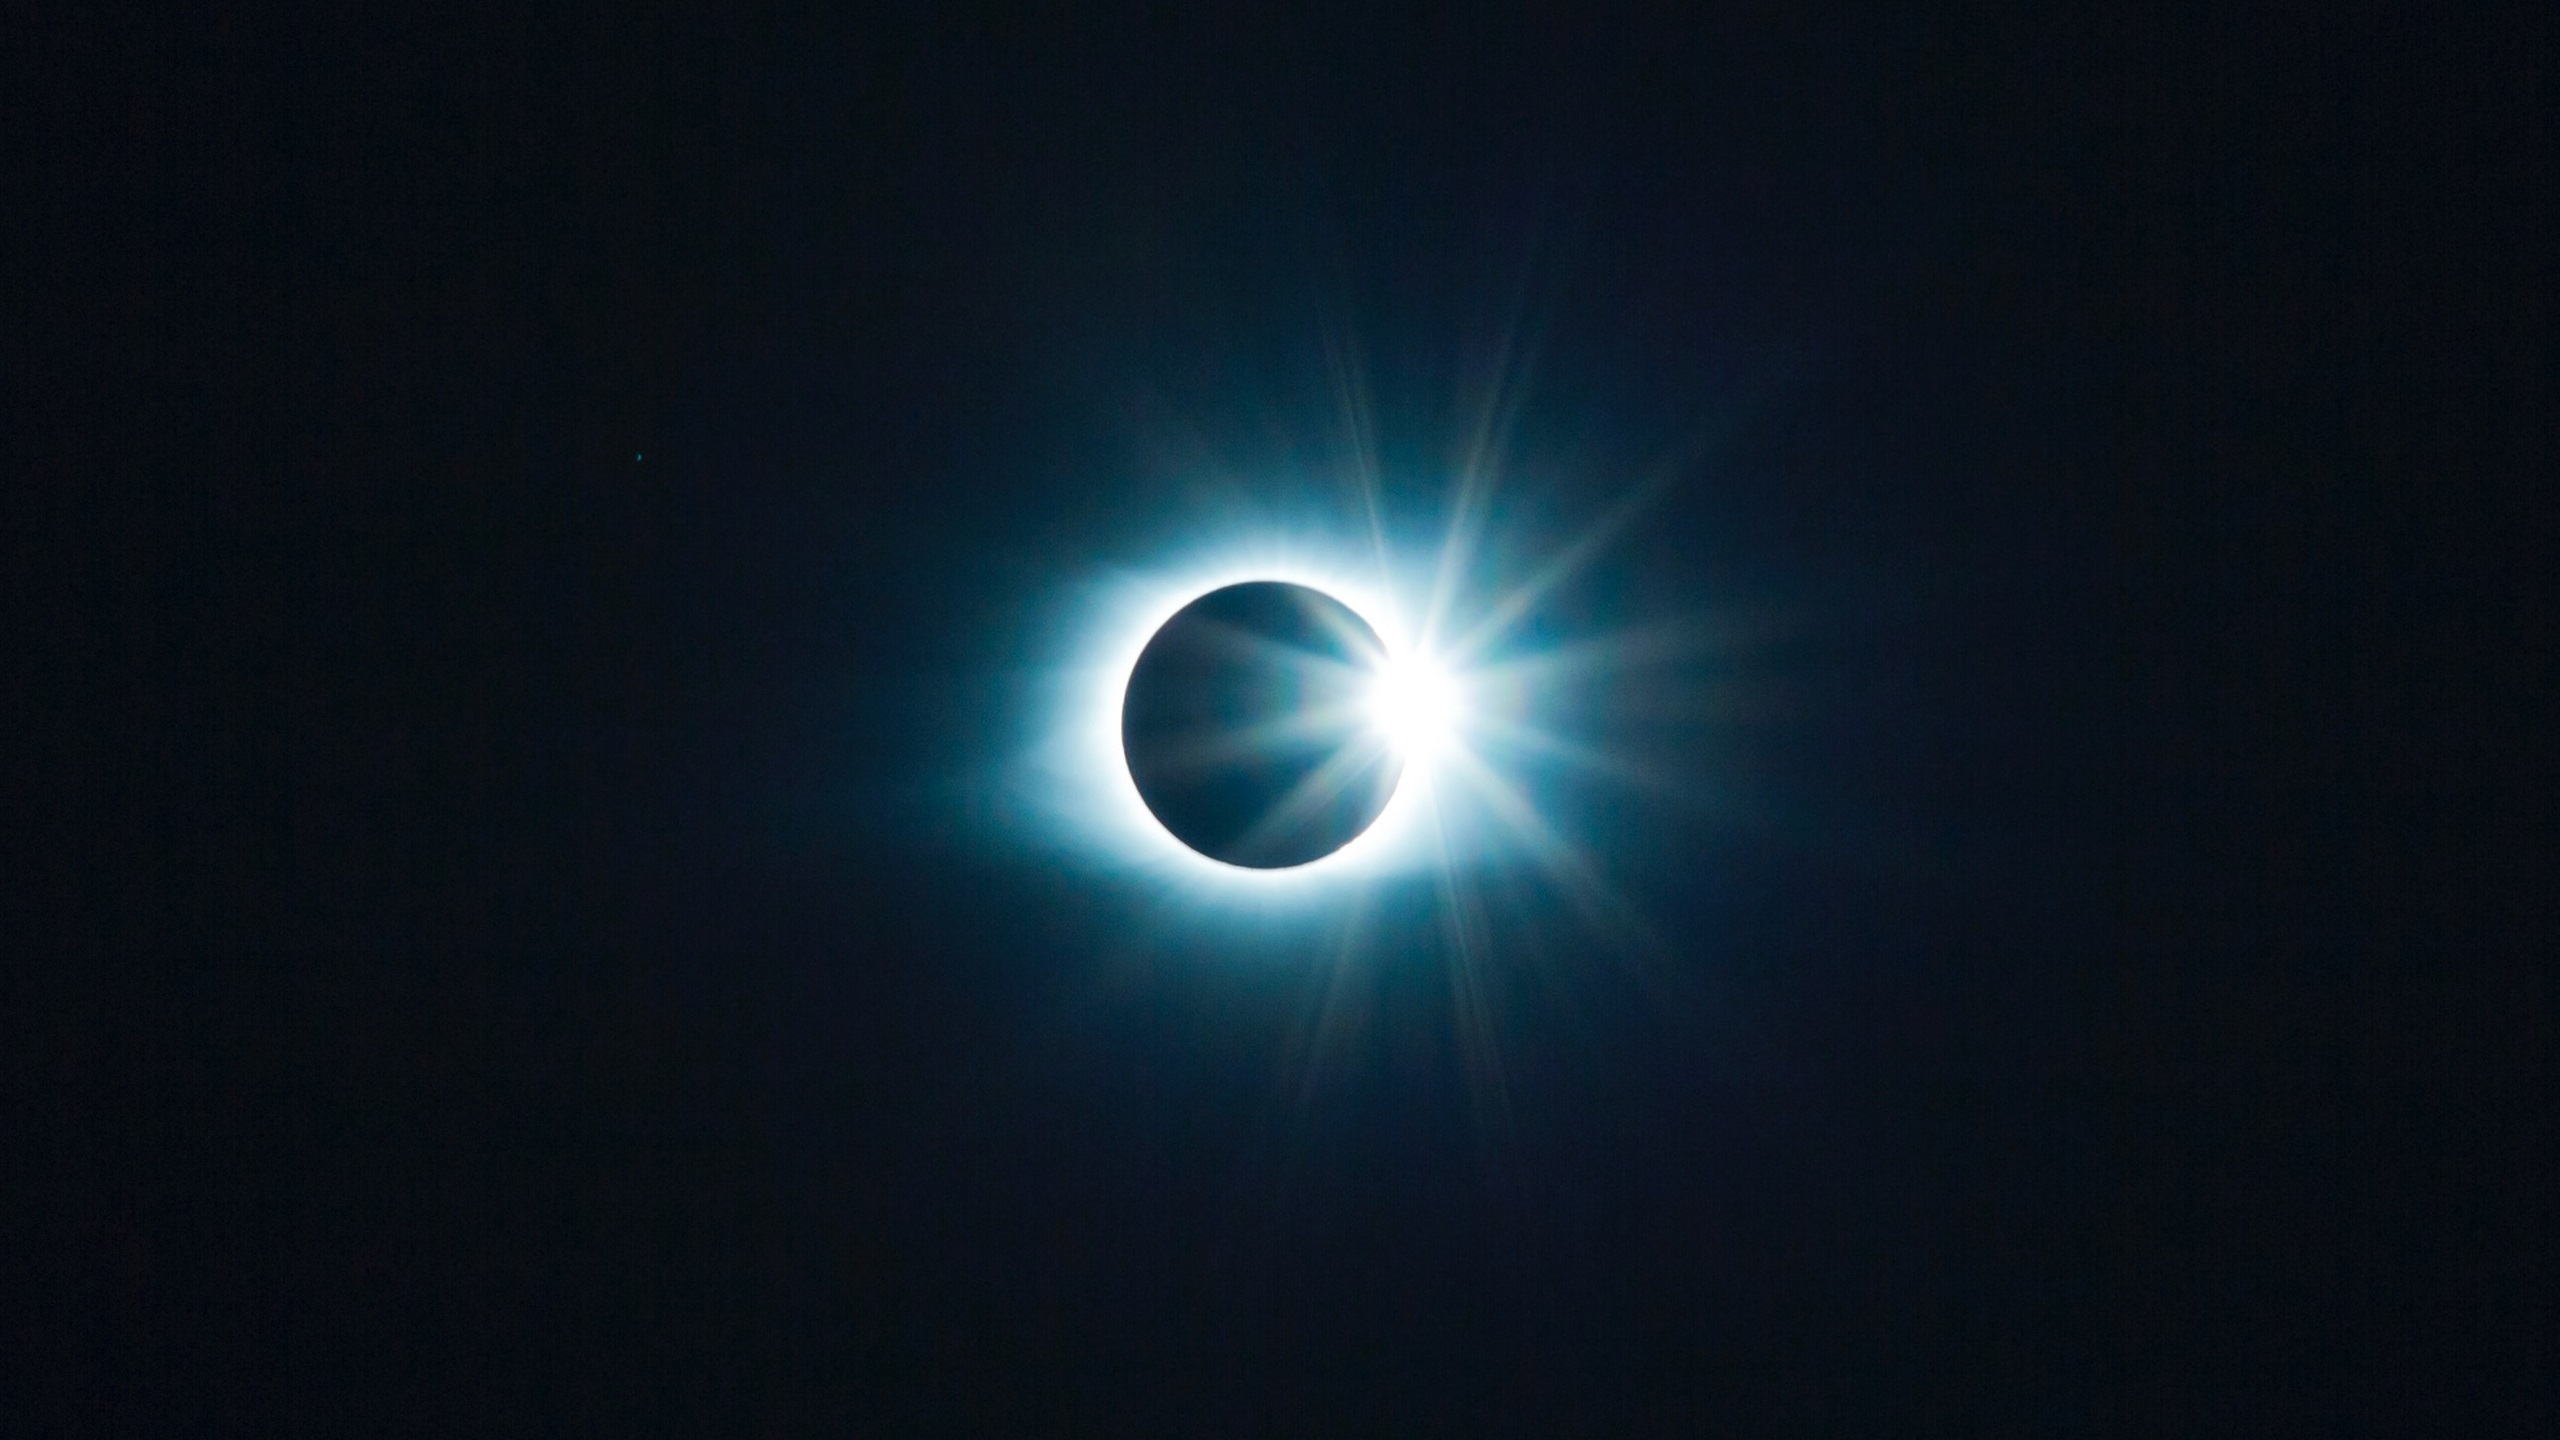 Wallpaper Eclipse Moon And Sun Space 2560x1600 Hd Picture Image